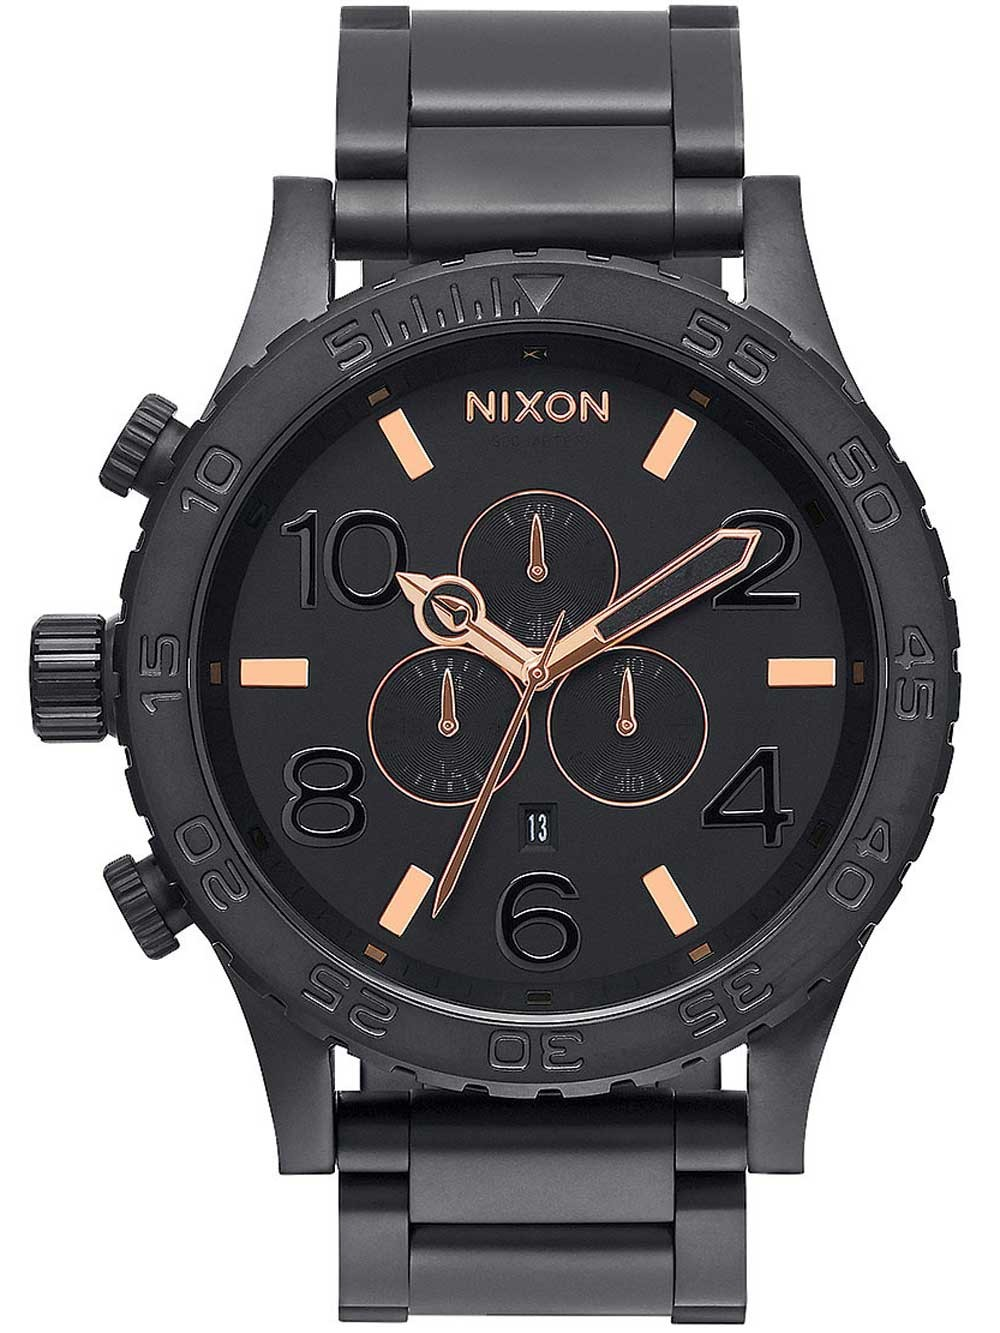 ceas barbatesc nixon a038-957 51-30 chrono 51mm 30atm